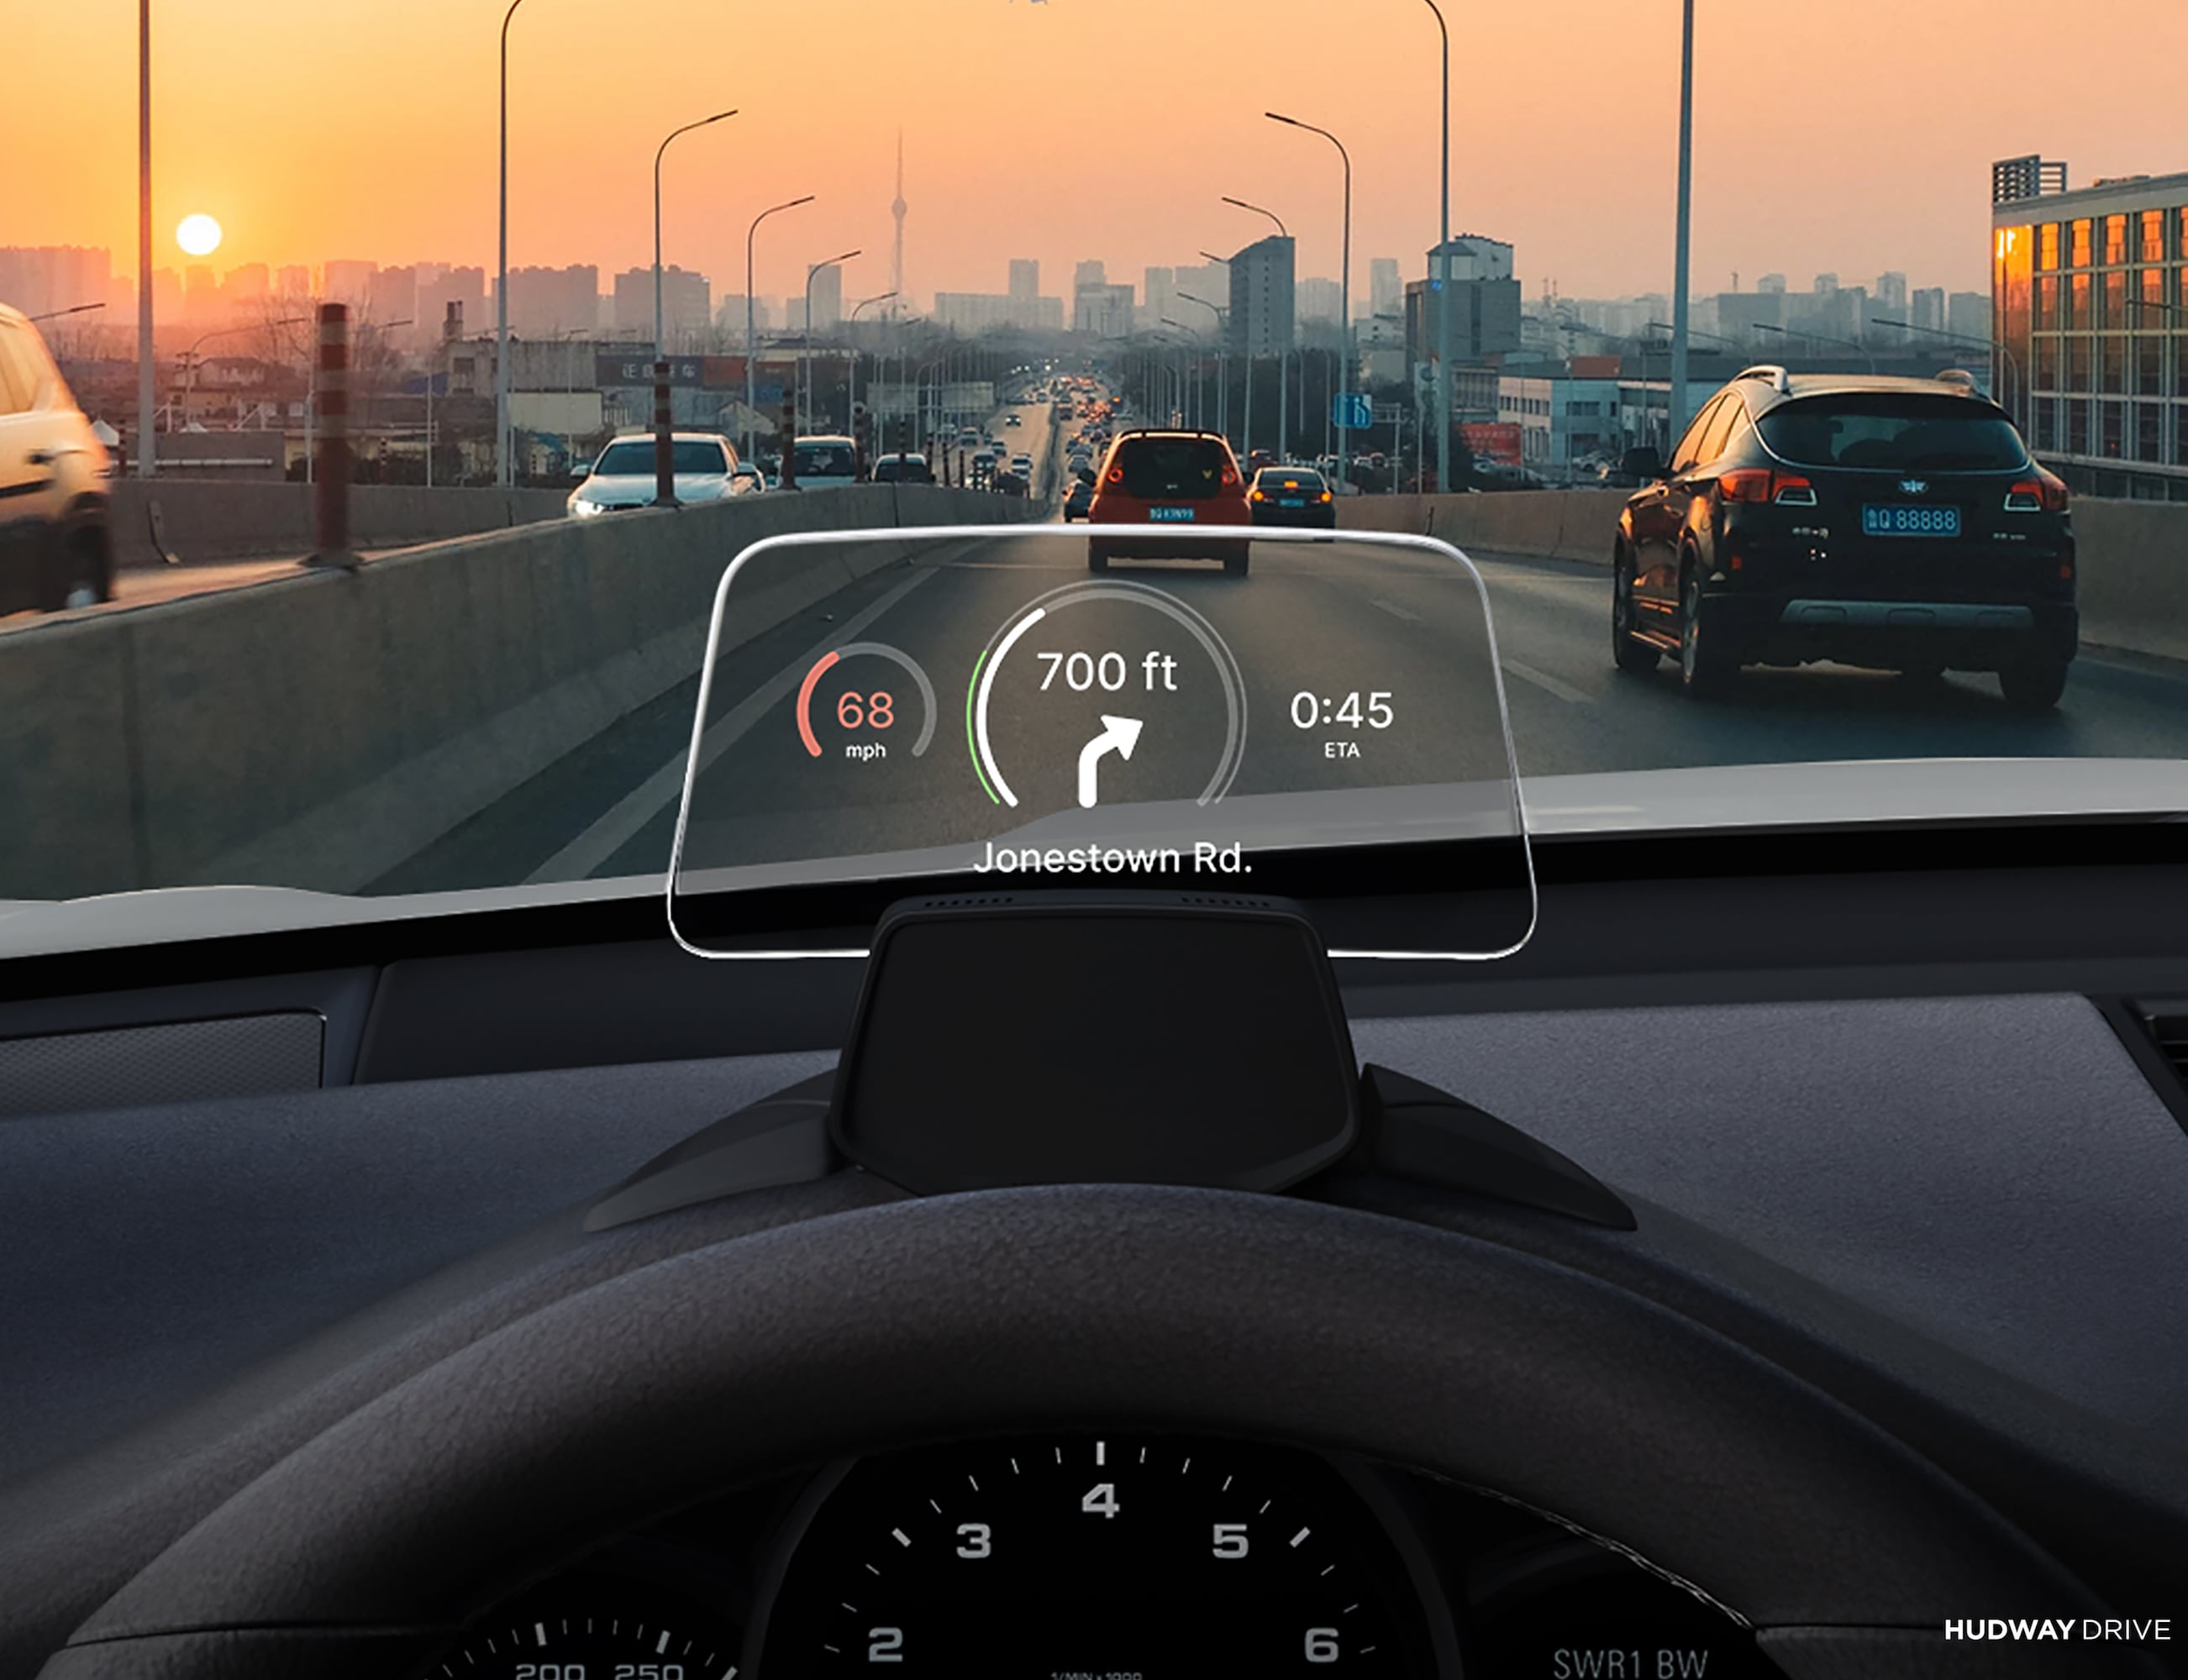 HUDWAY Drive Portable Head-Up Display keeps you focused on the road